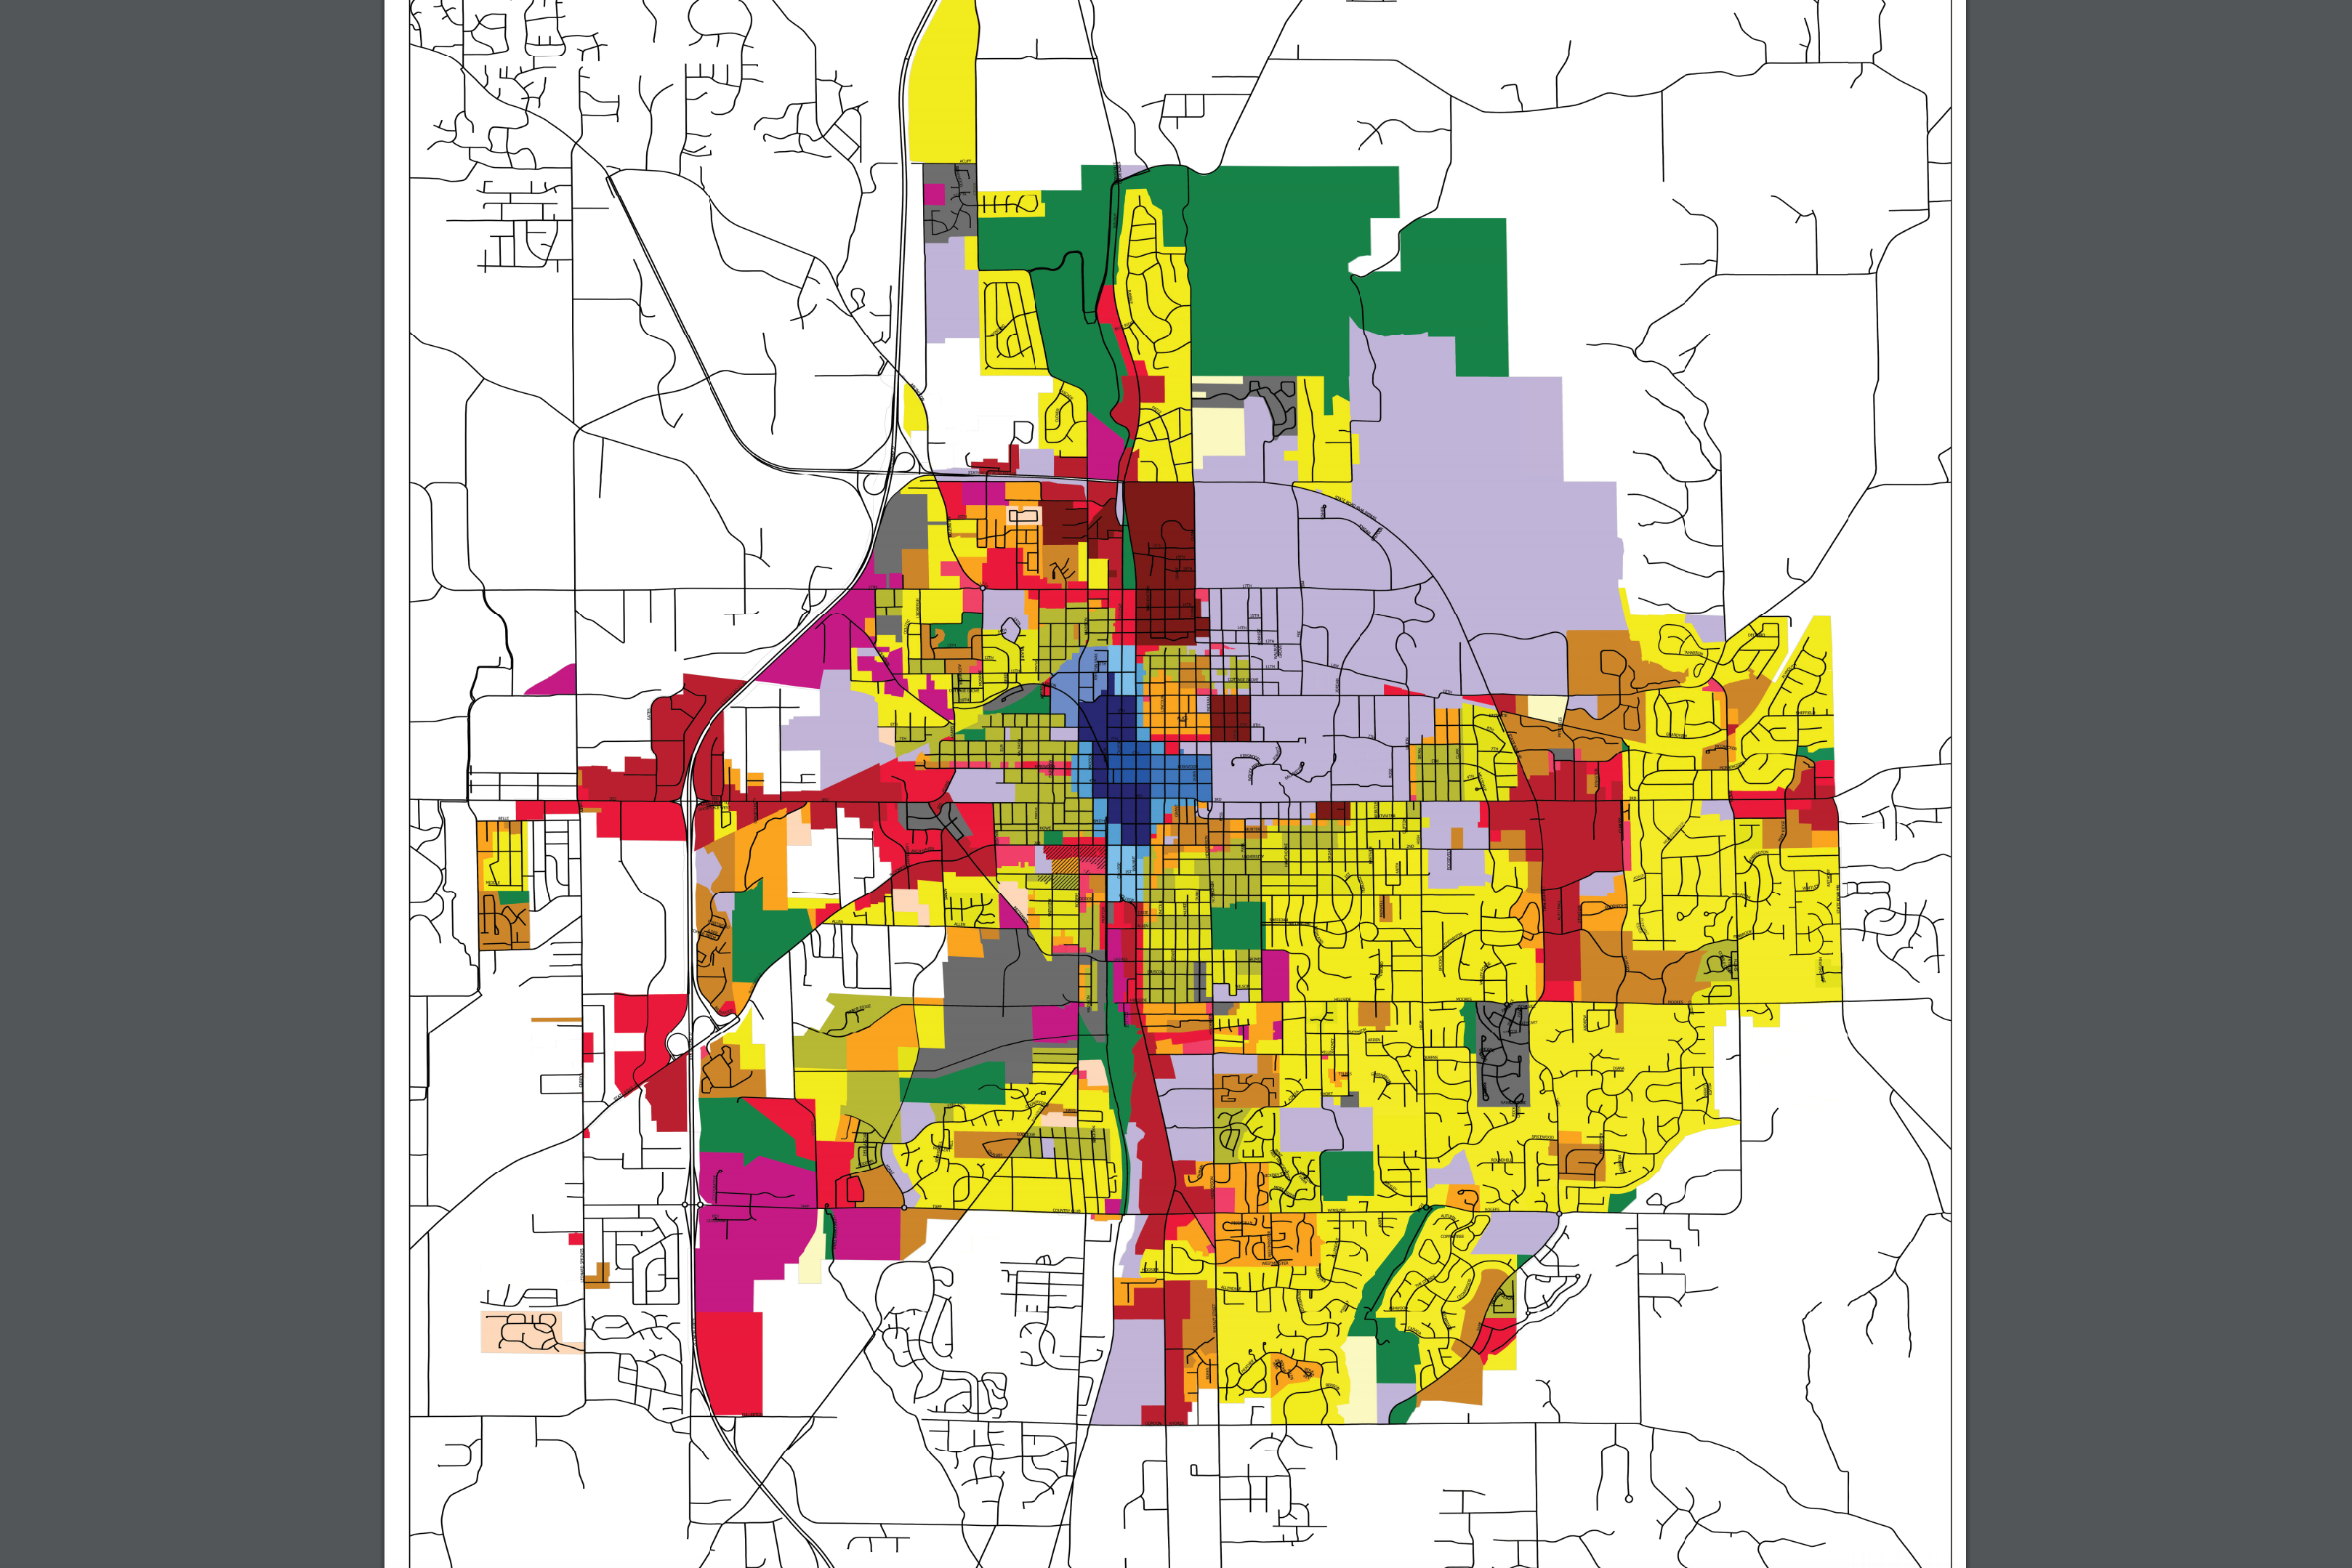 A screenshot of Bloomington's revisedUnified Development Ordinance map.